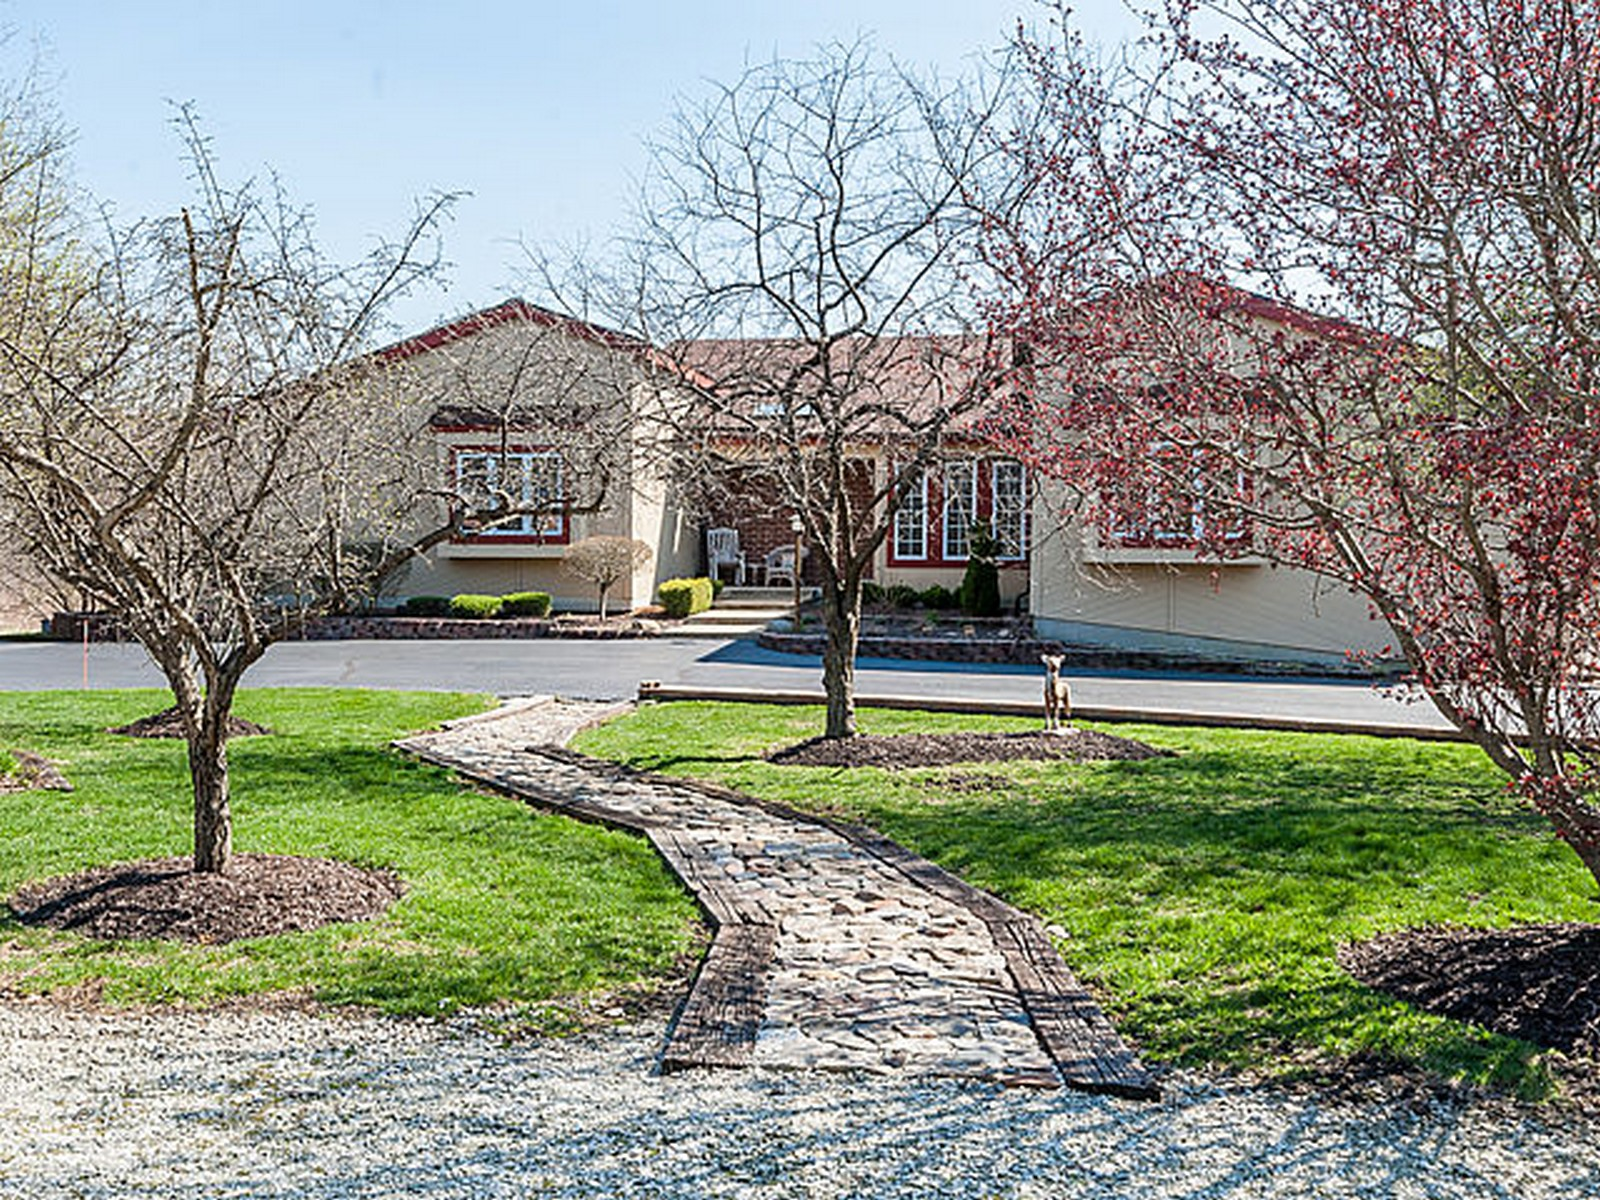 Moradia para Venda às Incredible Home in Beautiful Palos Park 8725 W 127th Street Palos Park, Illinois, 60464 Estados Unidos